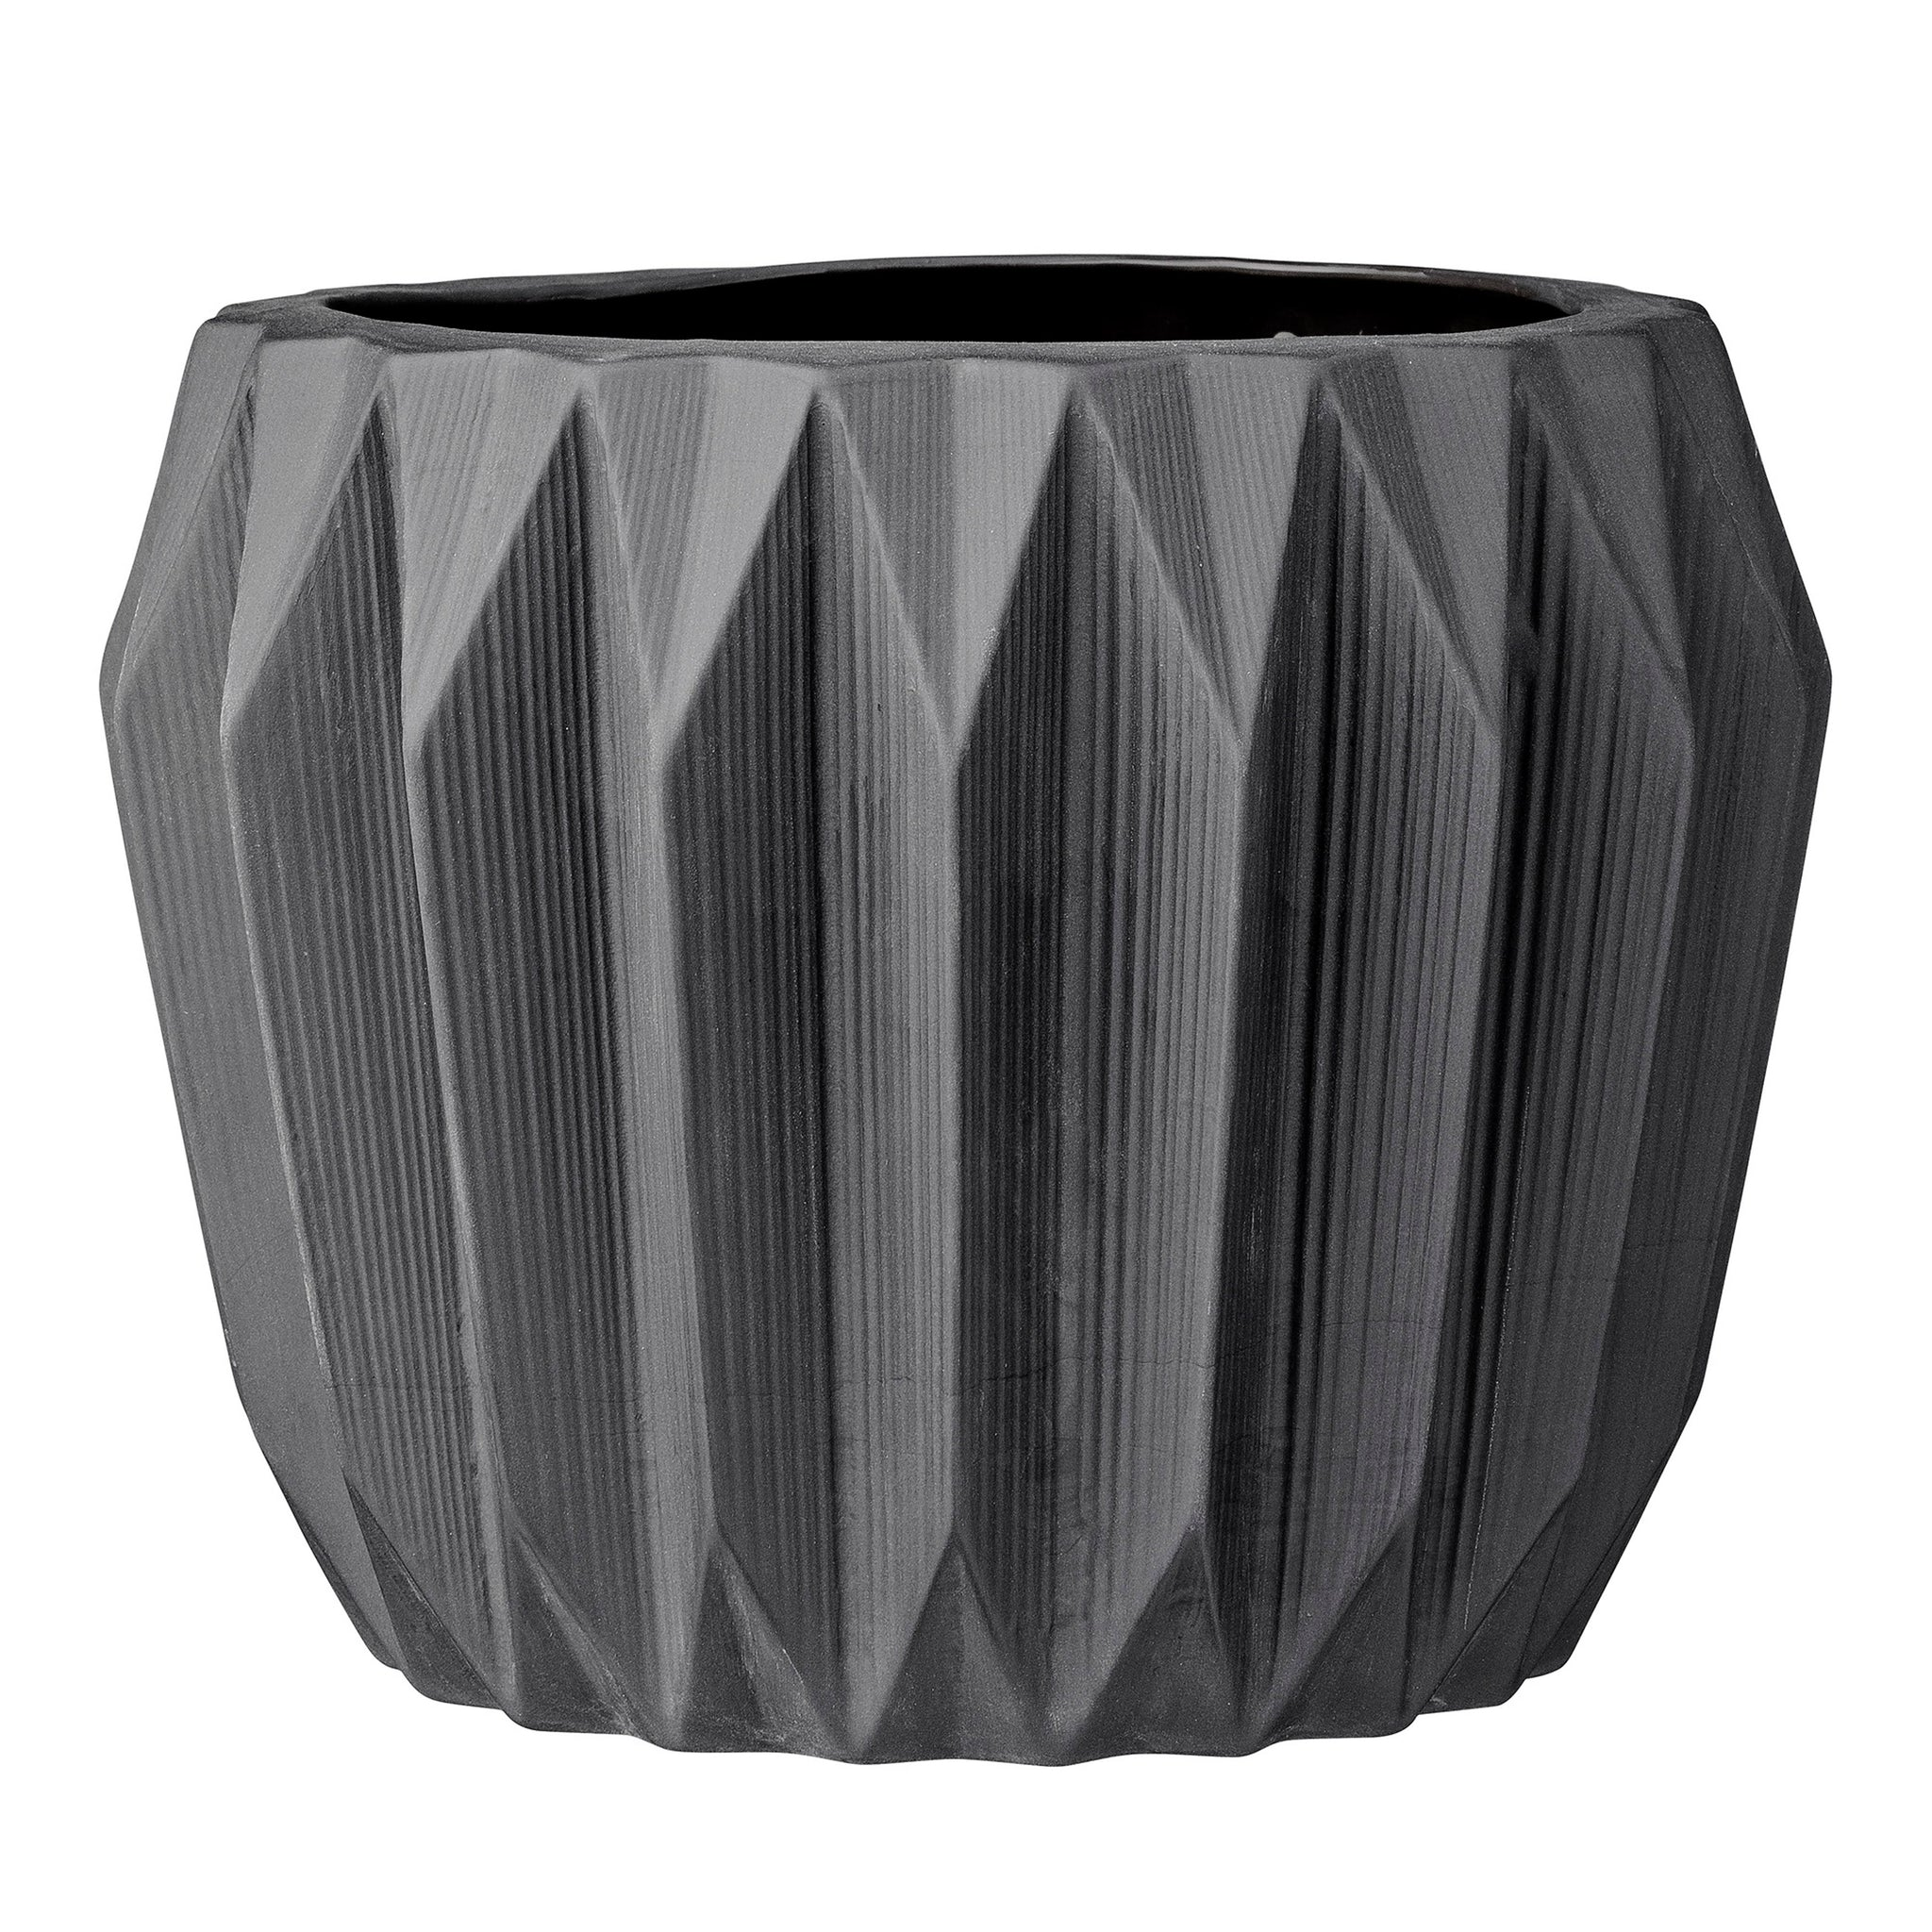 Round Grey Fluted Ceramic Flower Pot